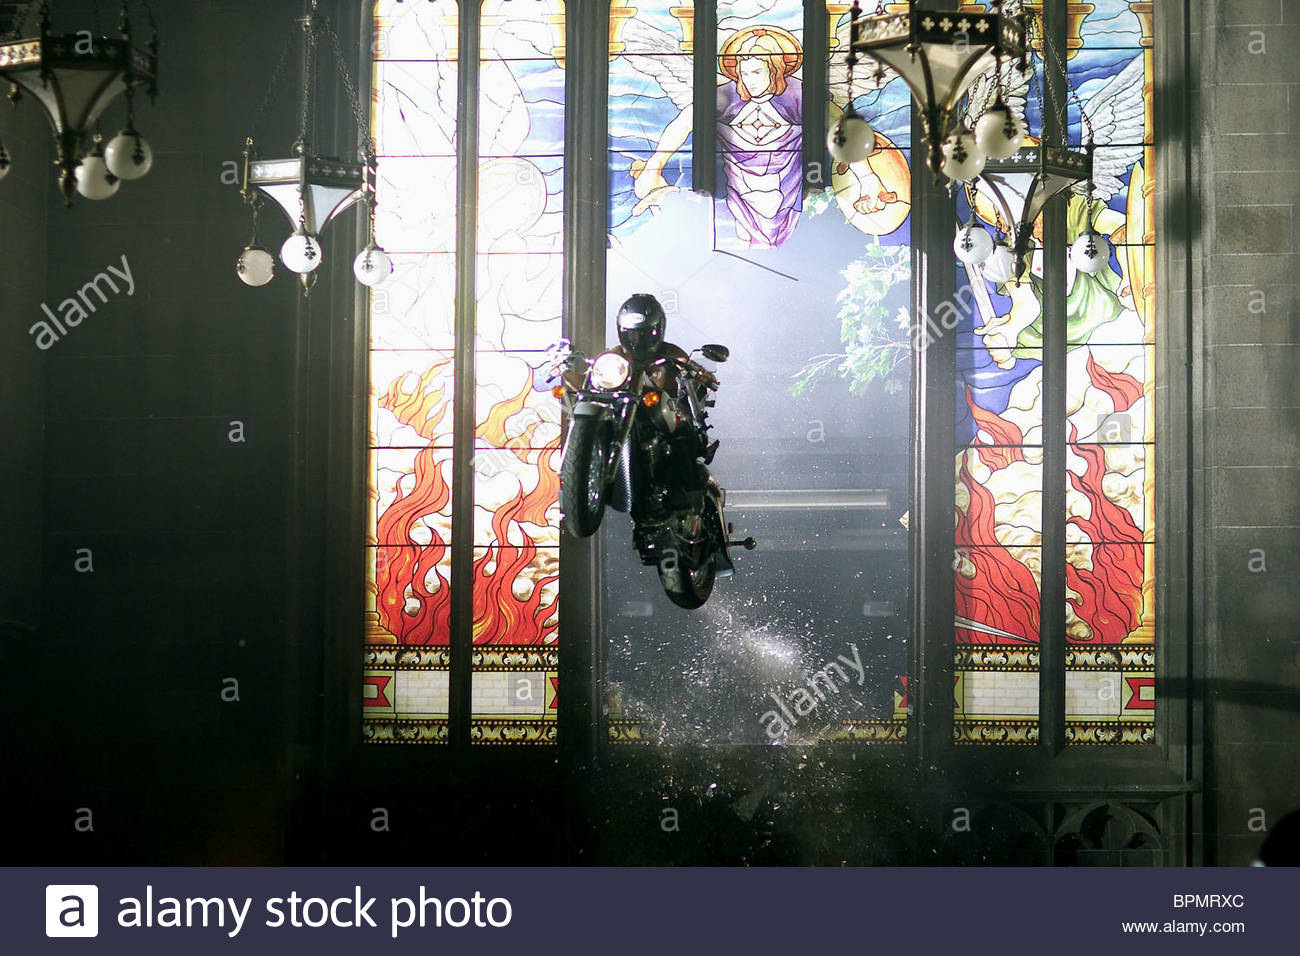 Motorcycle Smashes Through Stained Glass Window Film Title Resident